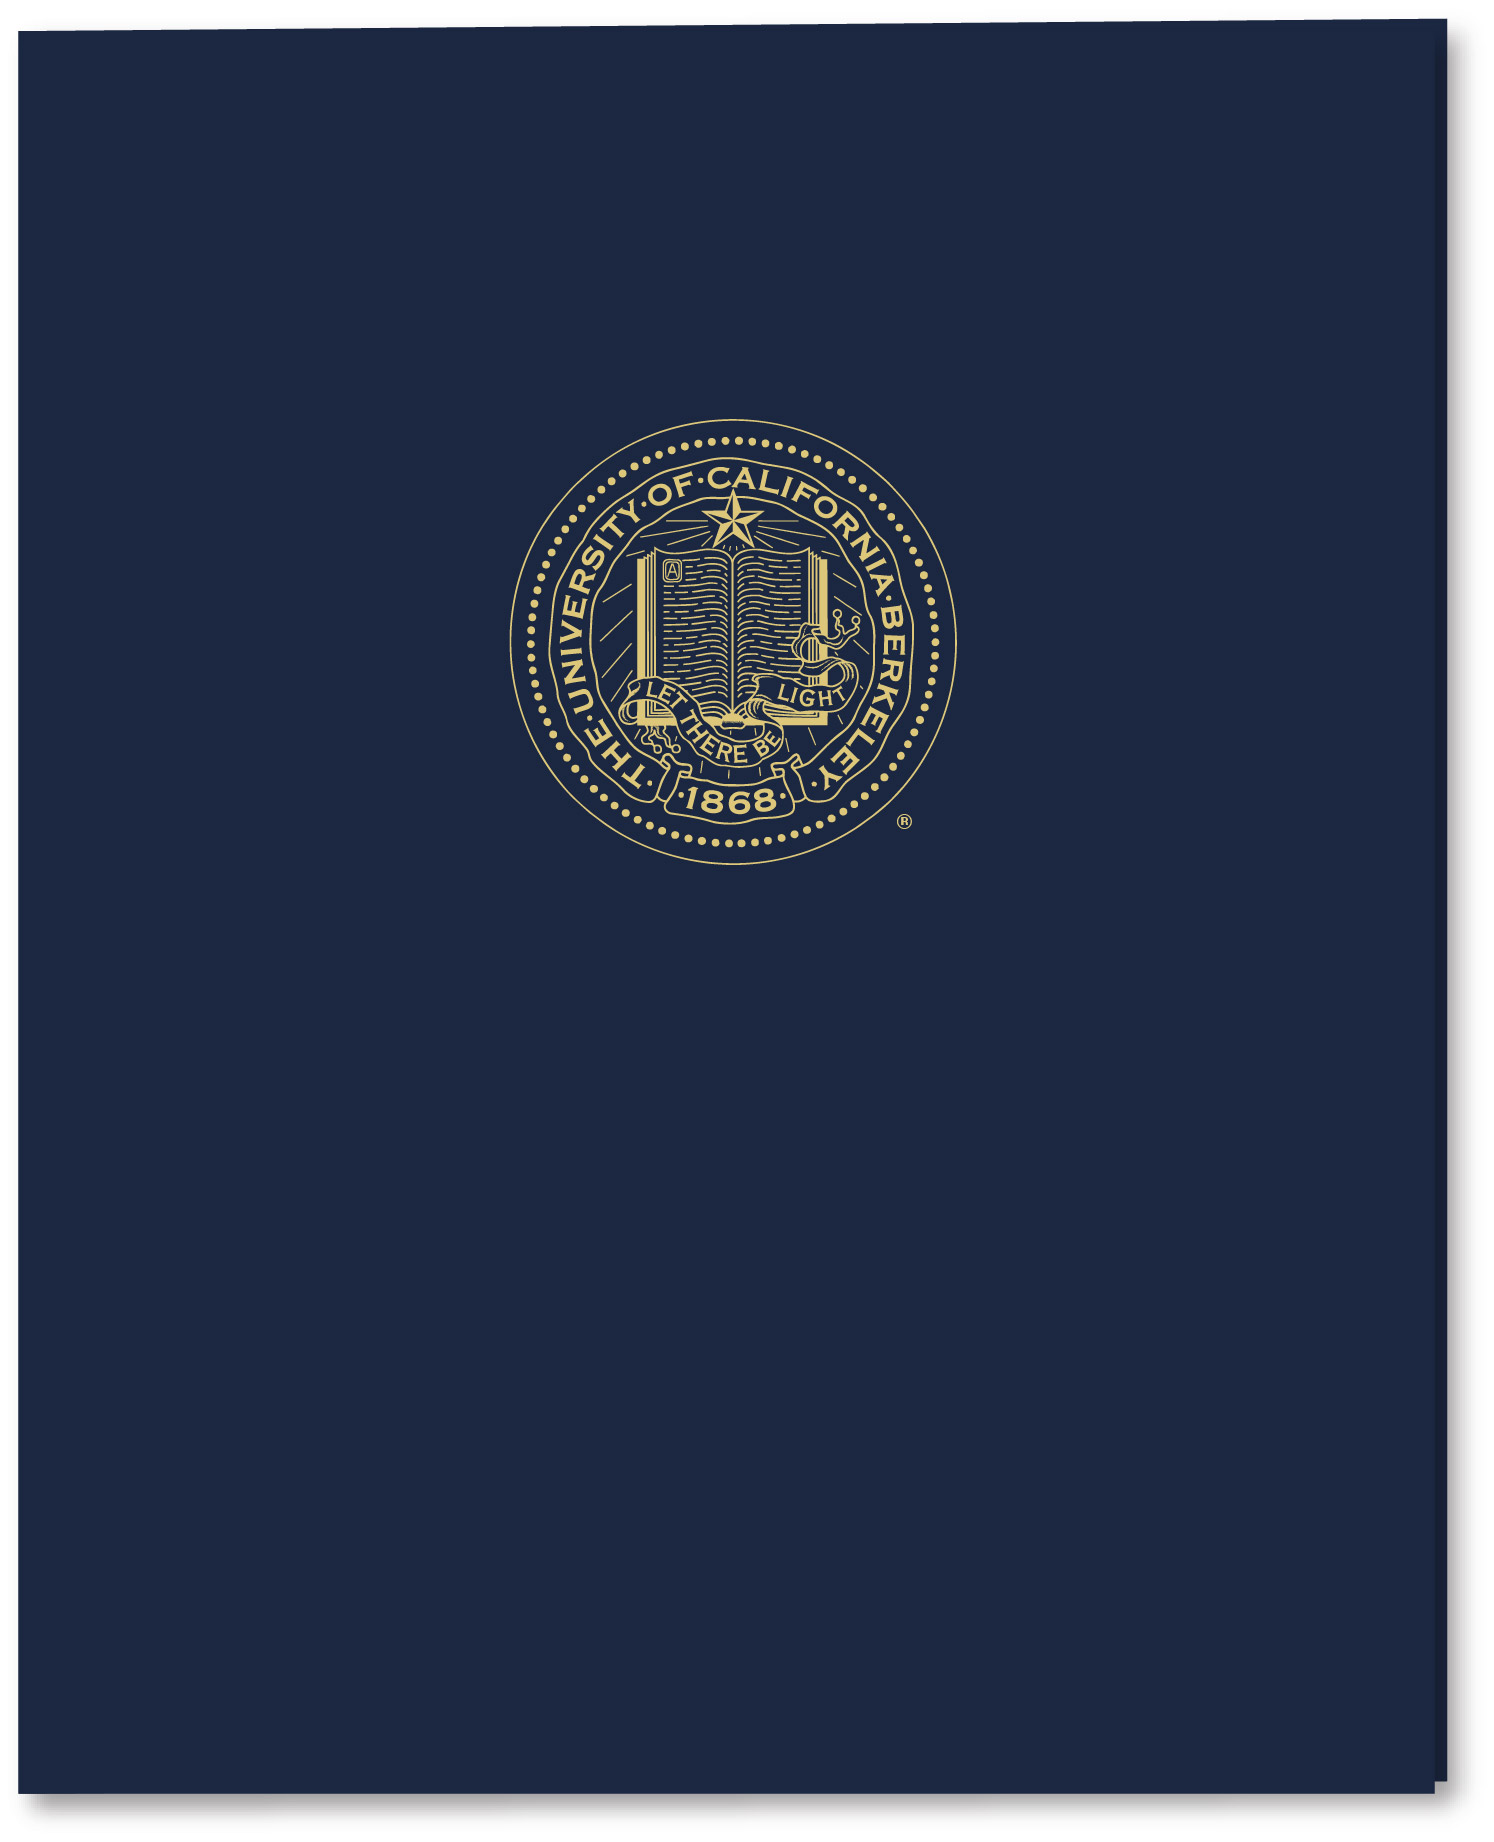 Laminated Folders with Seal